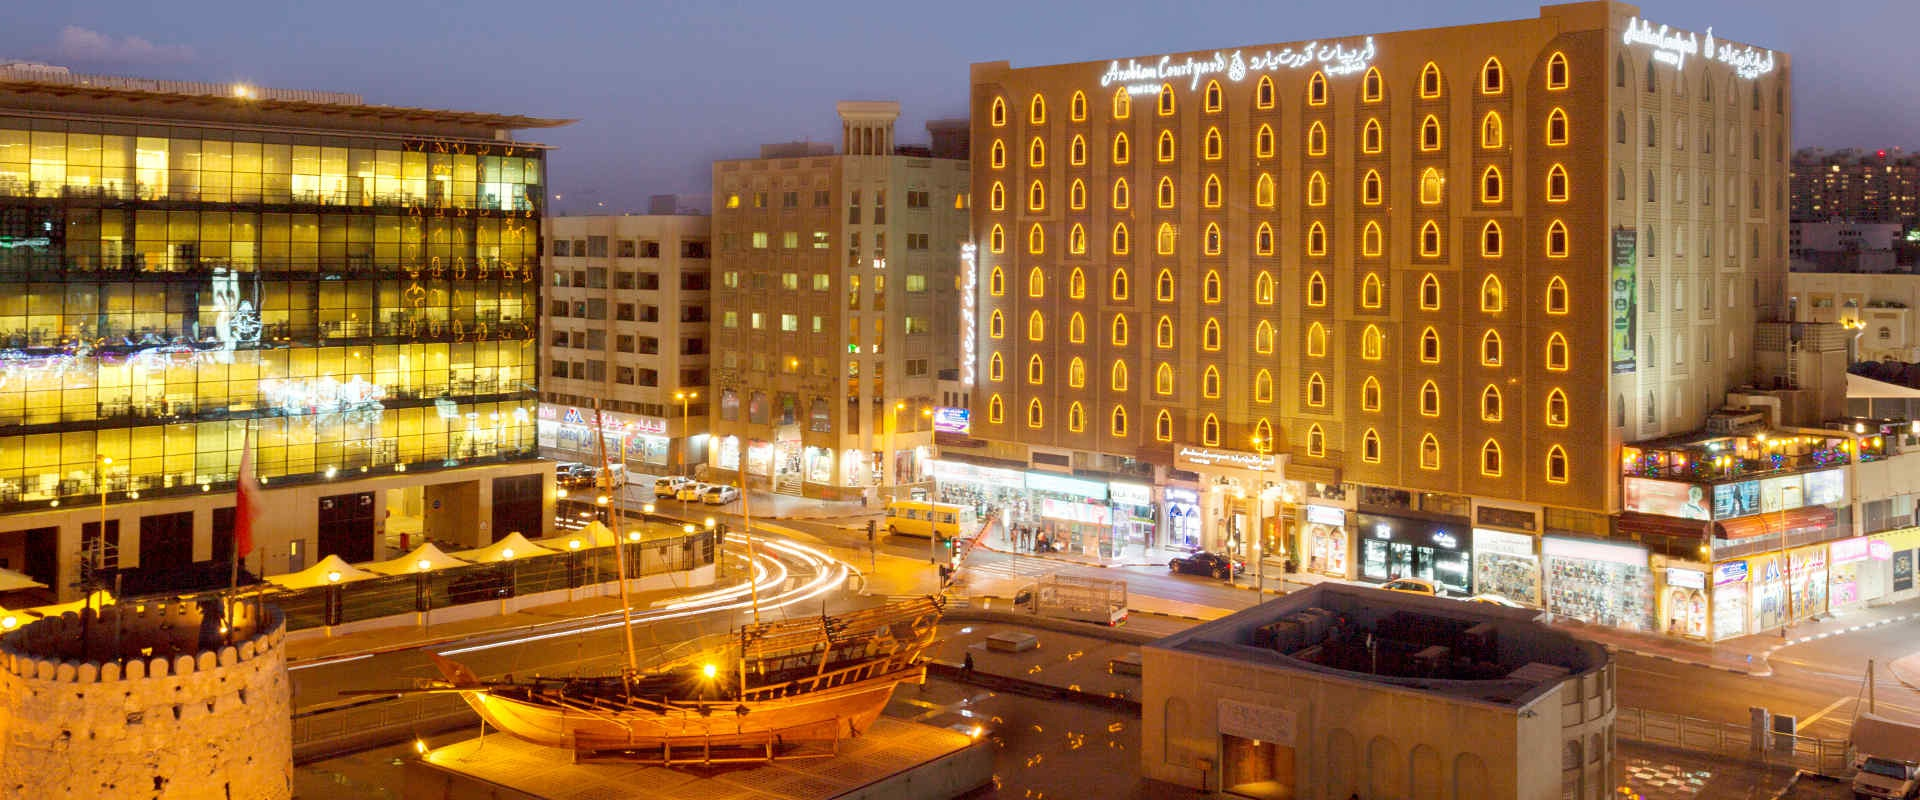 Arabian courtyard hotel official website arabian courtyard hotel & spa bur dubai